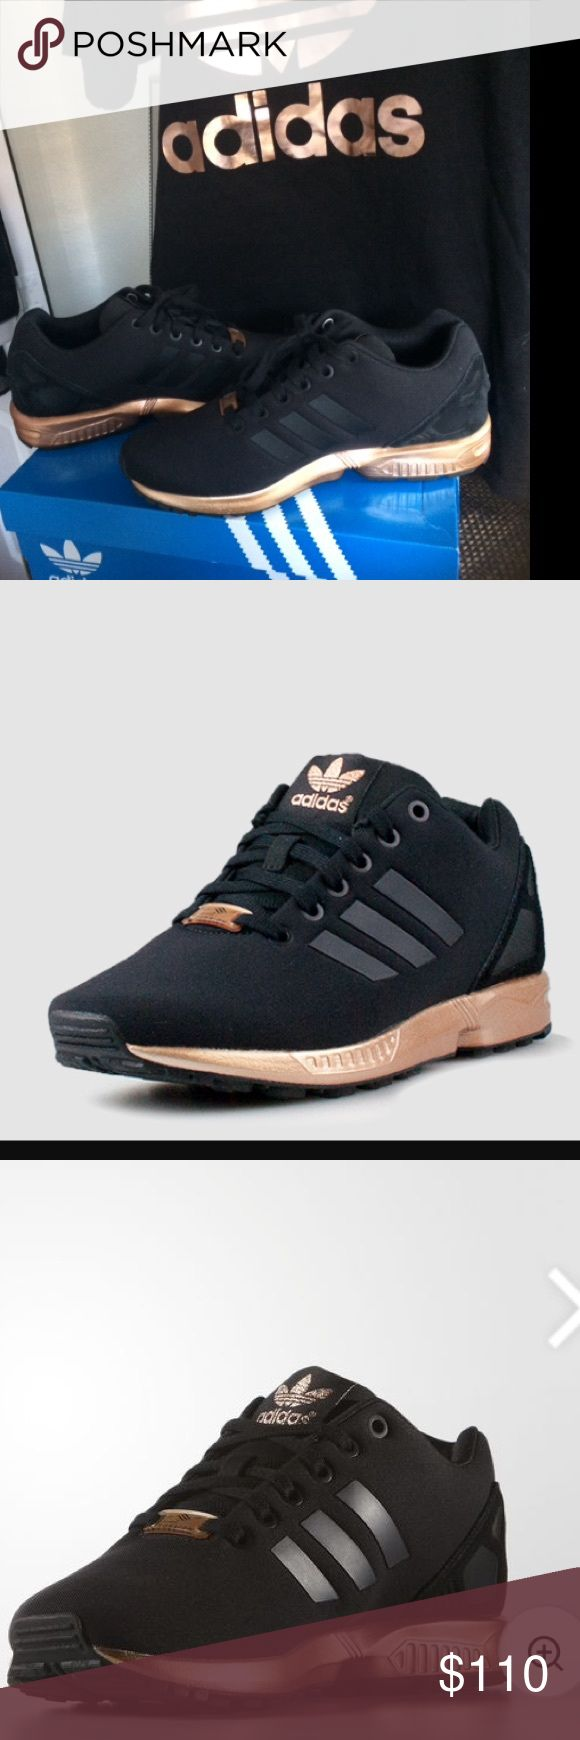 grande vente 16a7e 67774 adidas zx flux taille grand ou petit,Chaussure Adidas taille ...